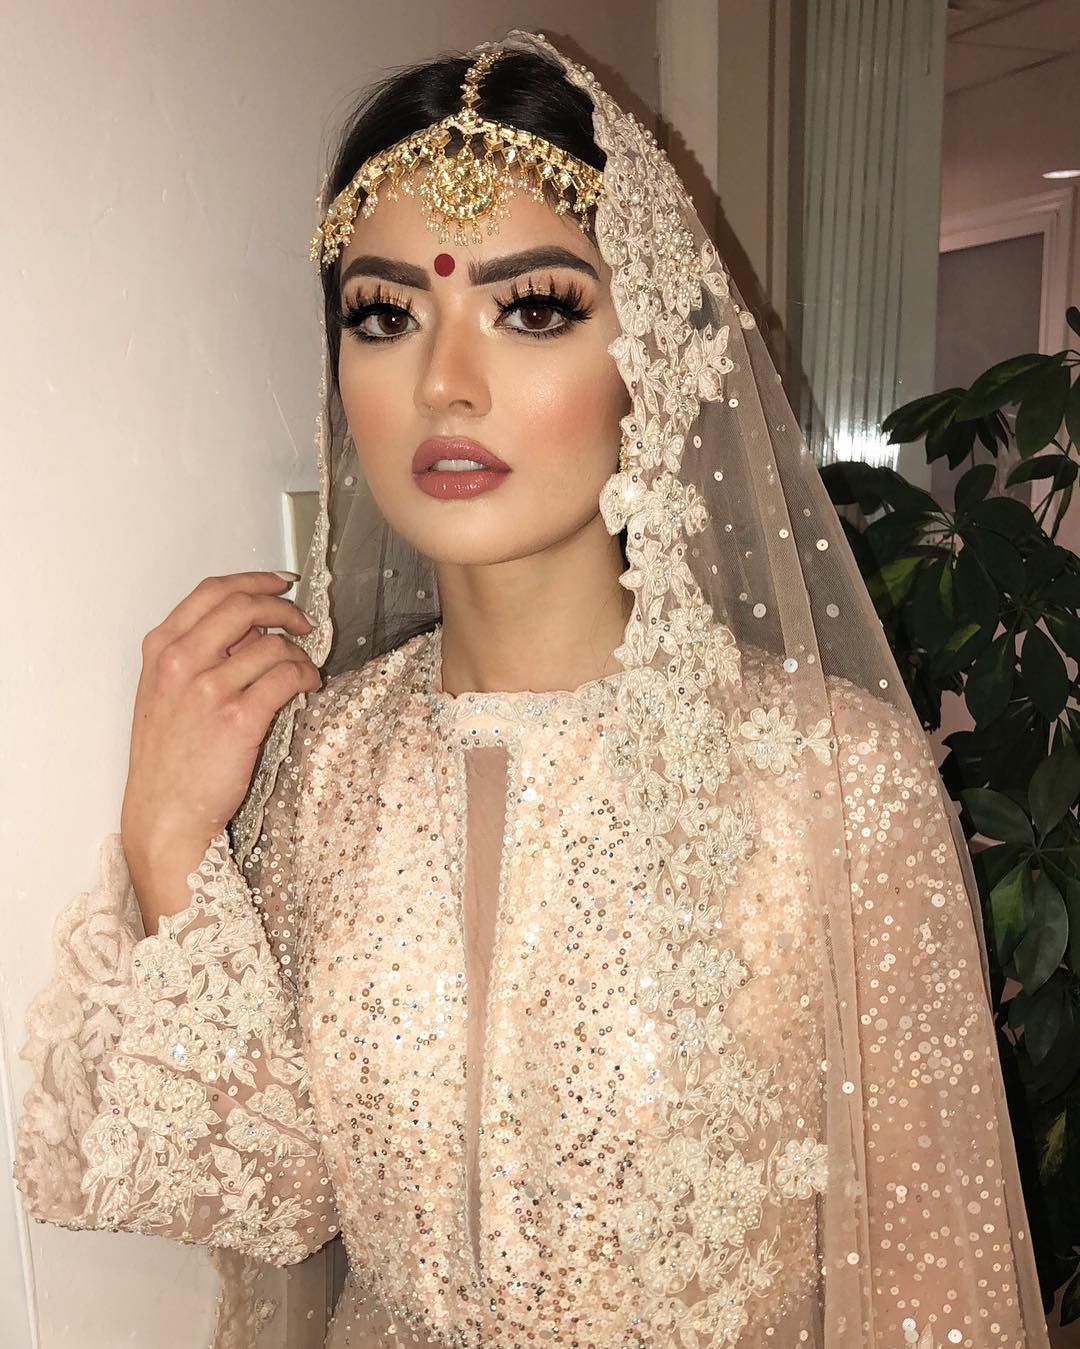 4,968 Likes, 64 Comments By Sohal Grewal / HMUA